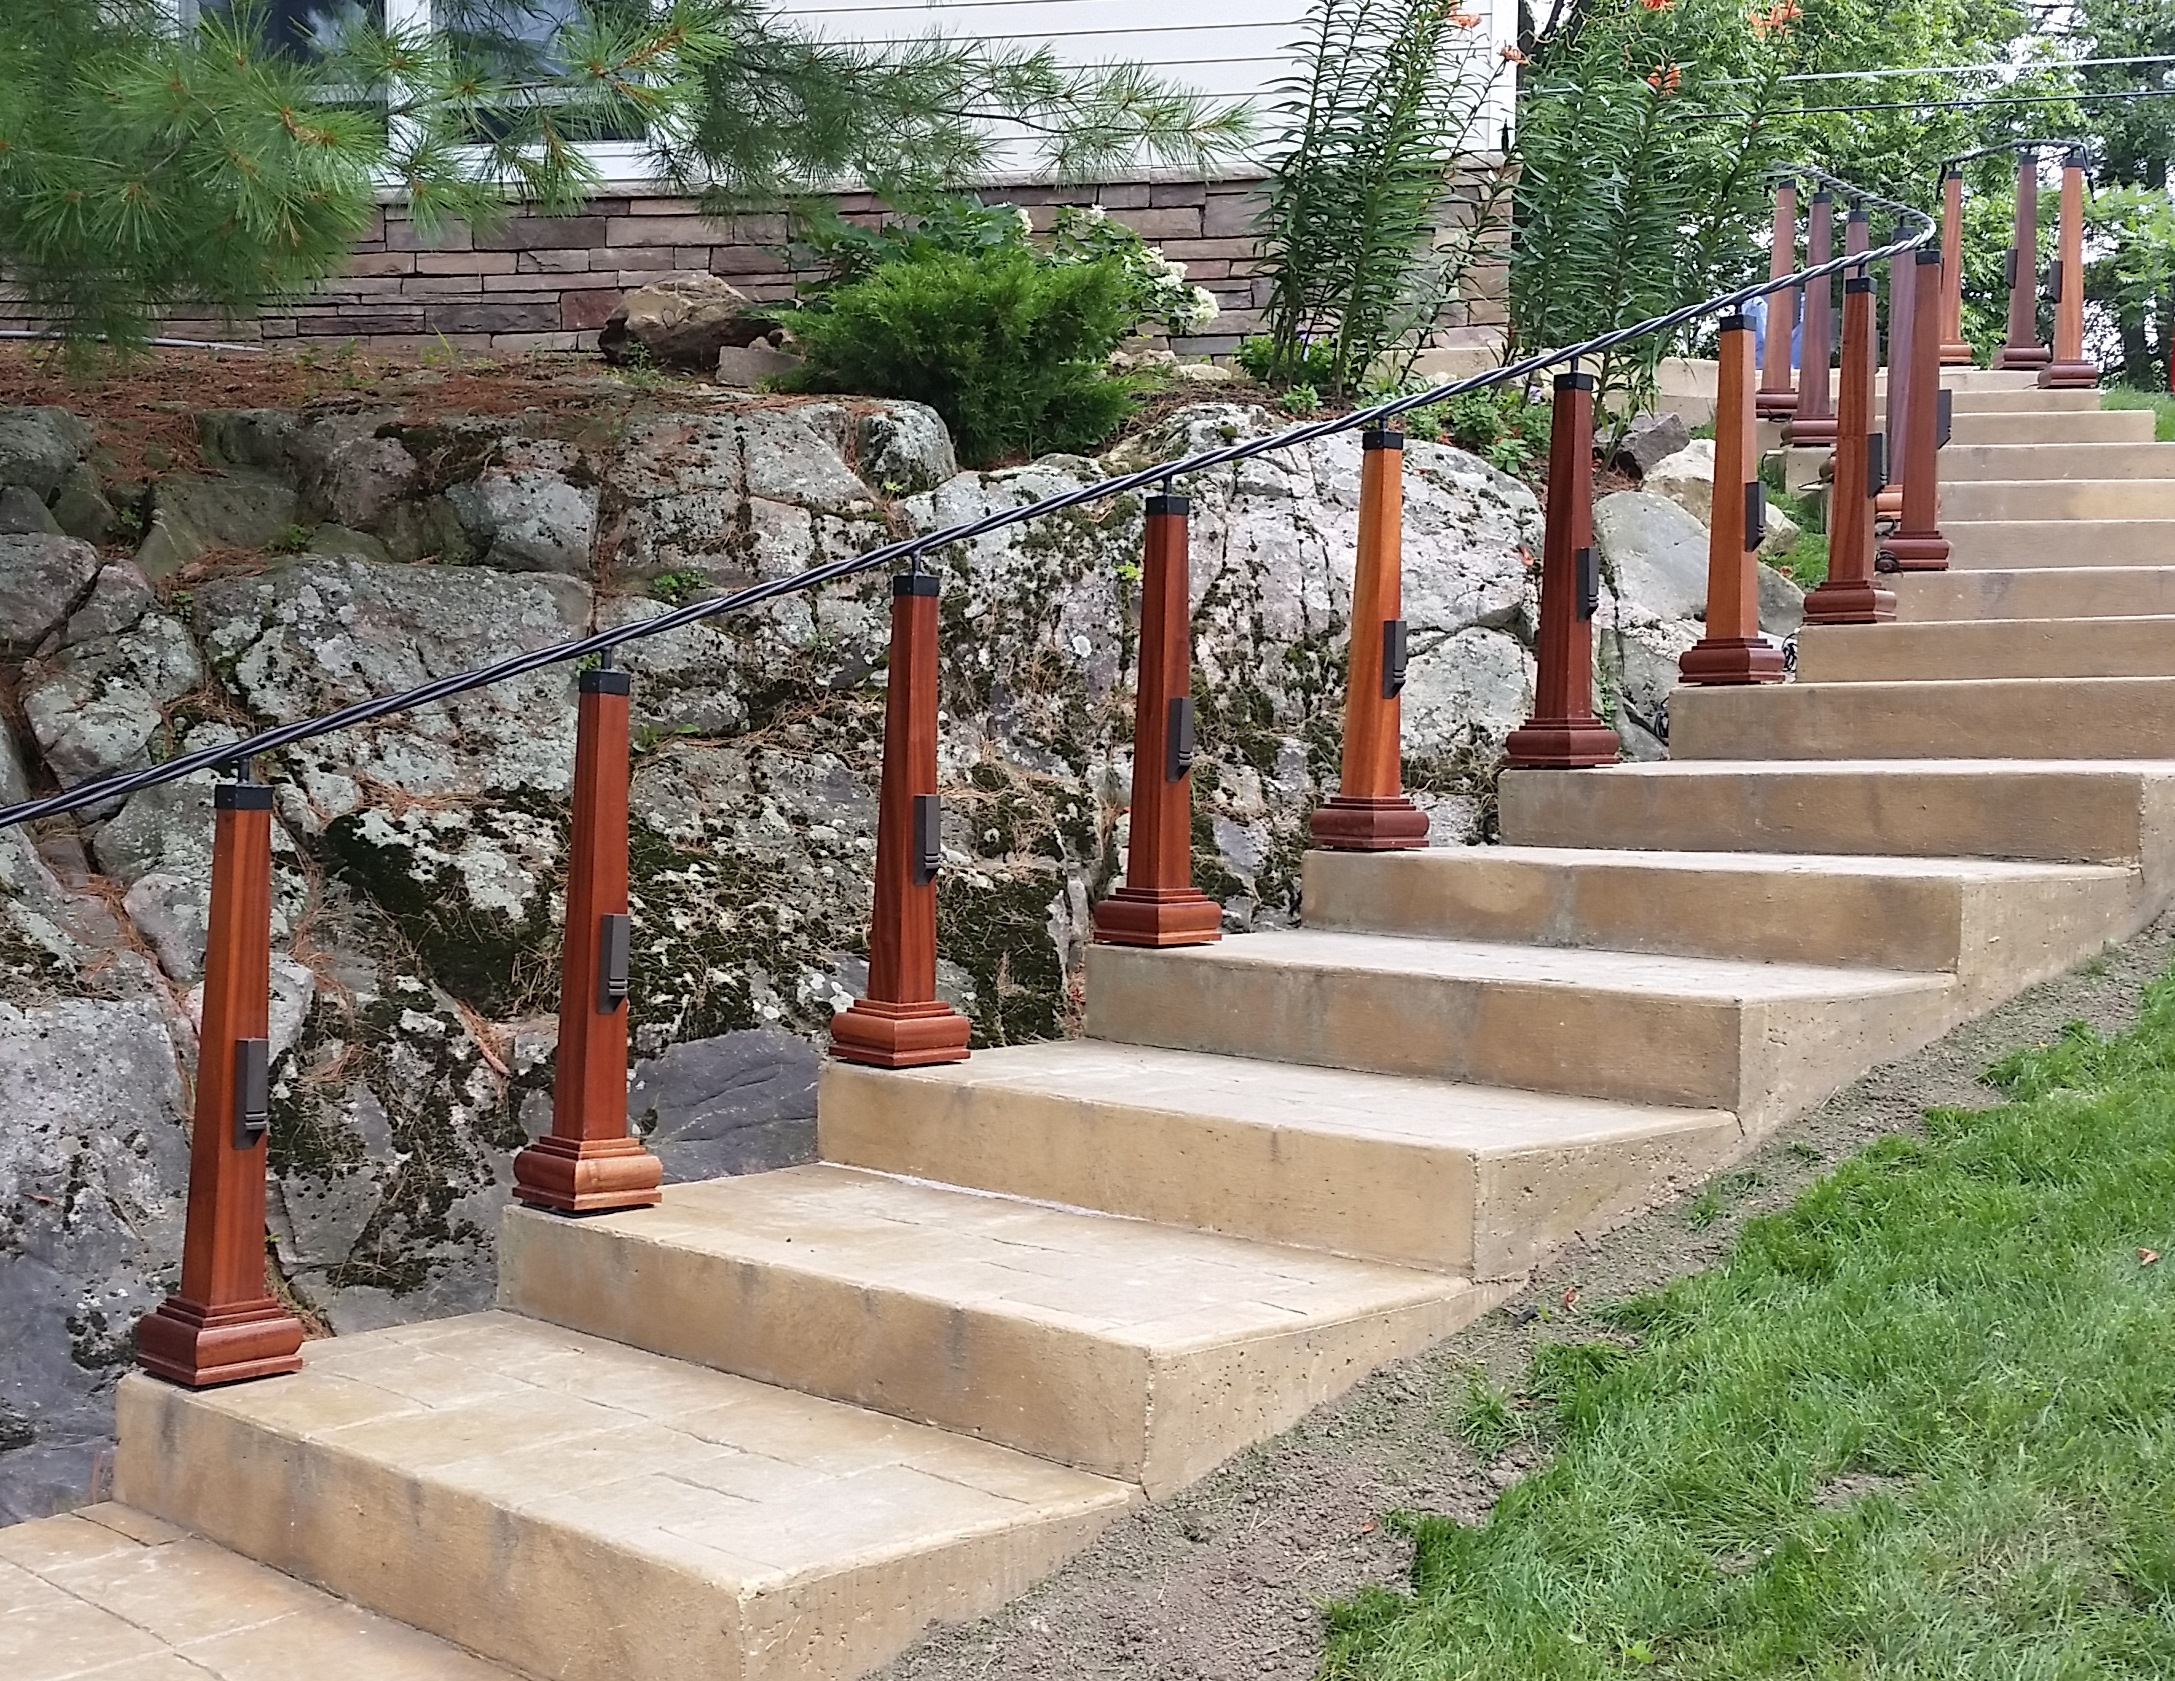 Hand twisted steel railings, Mahogany posts with LED lighting